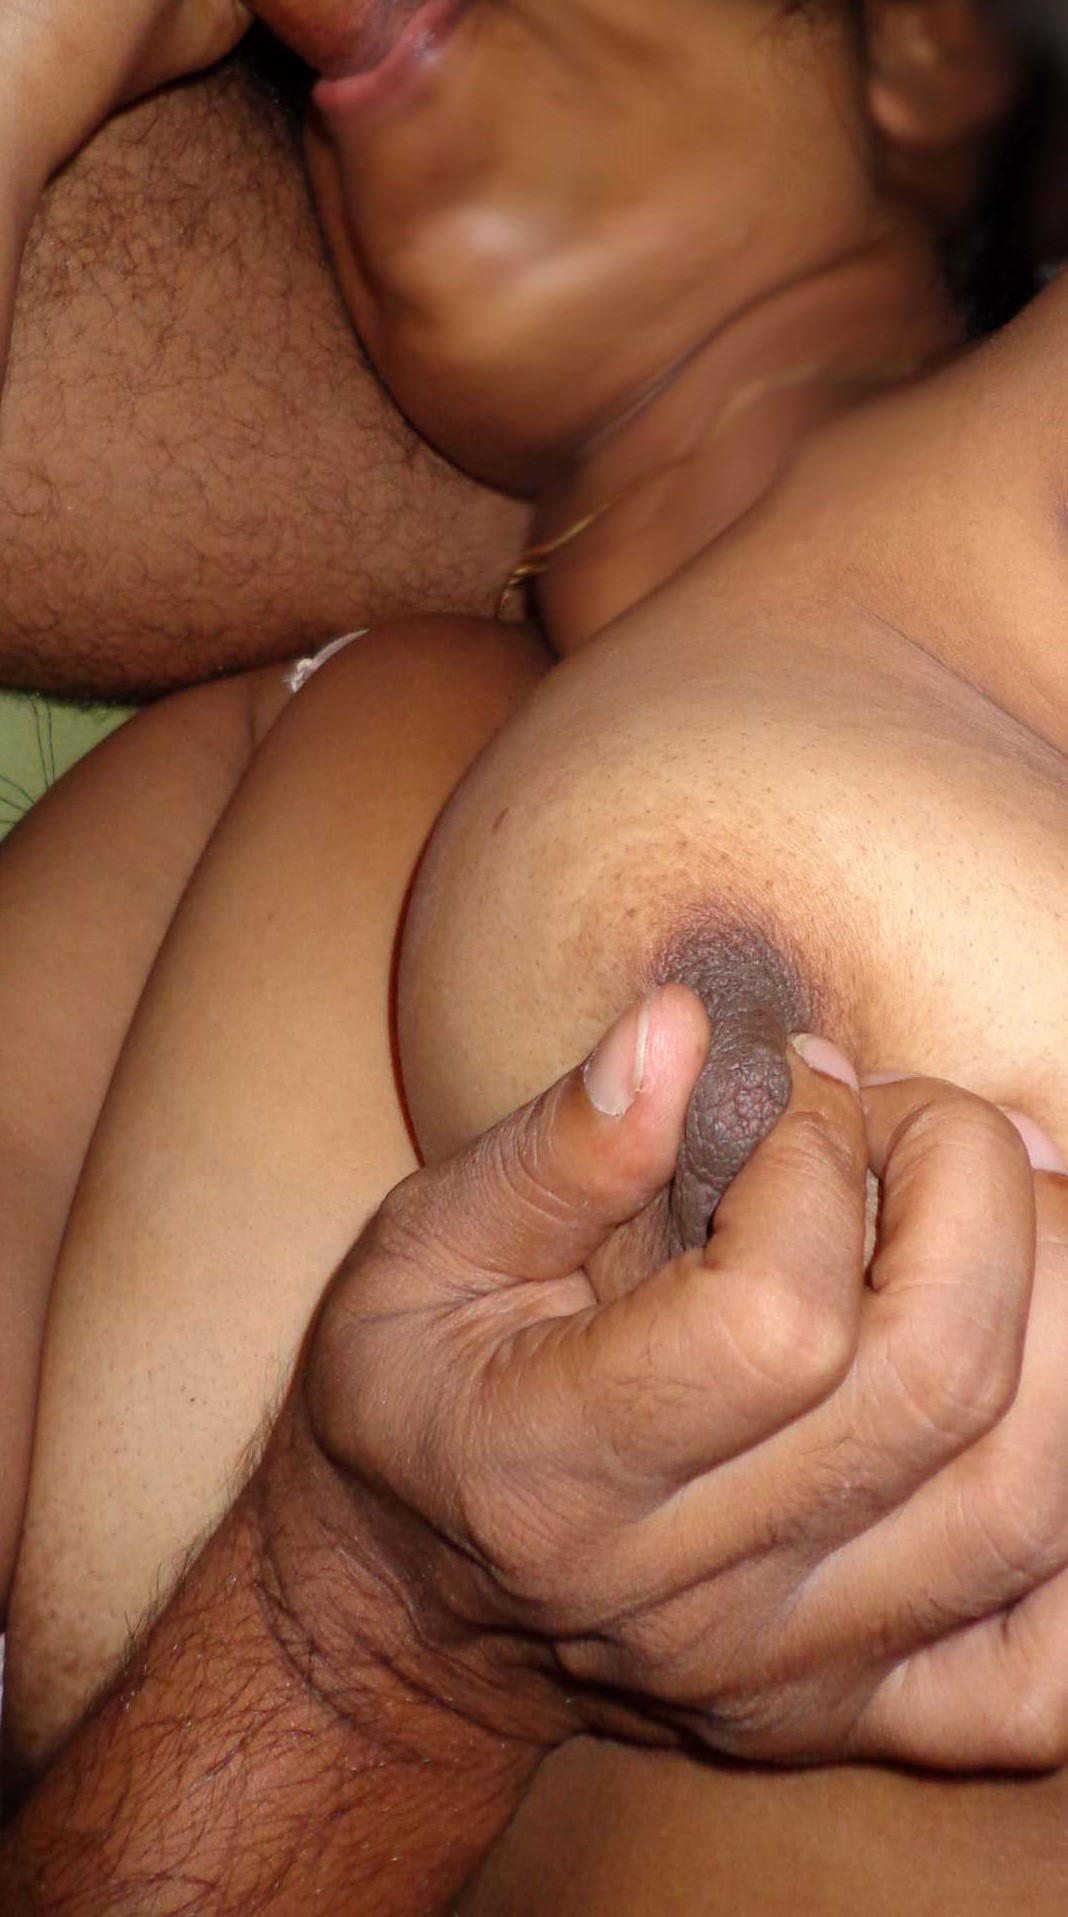 Share your Indian fucking nude pregnant this excellent